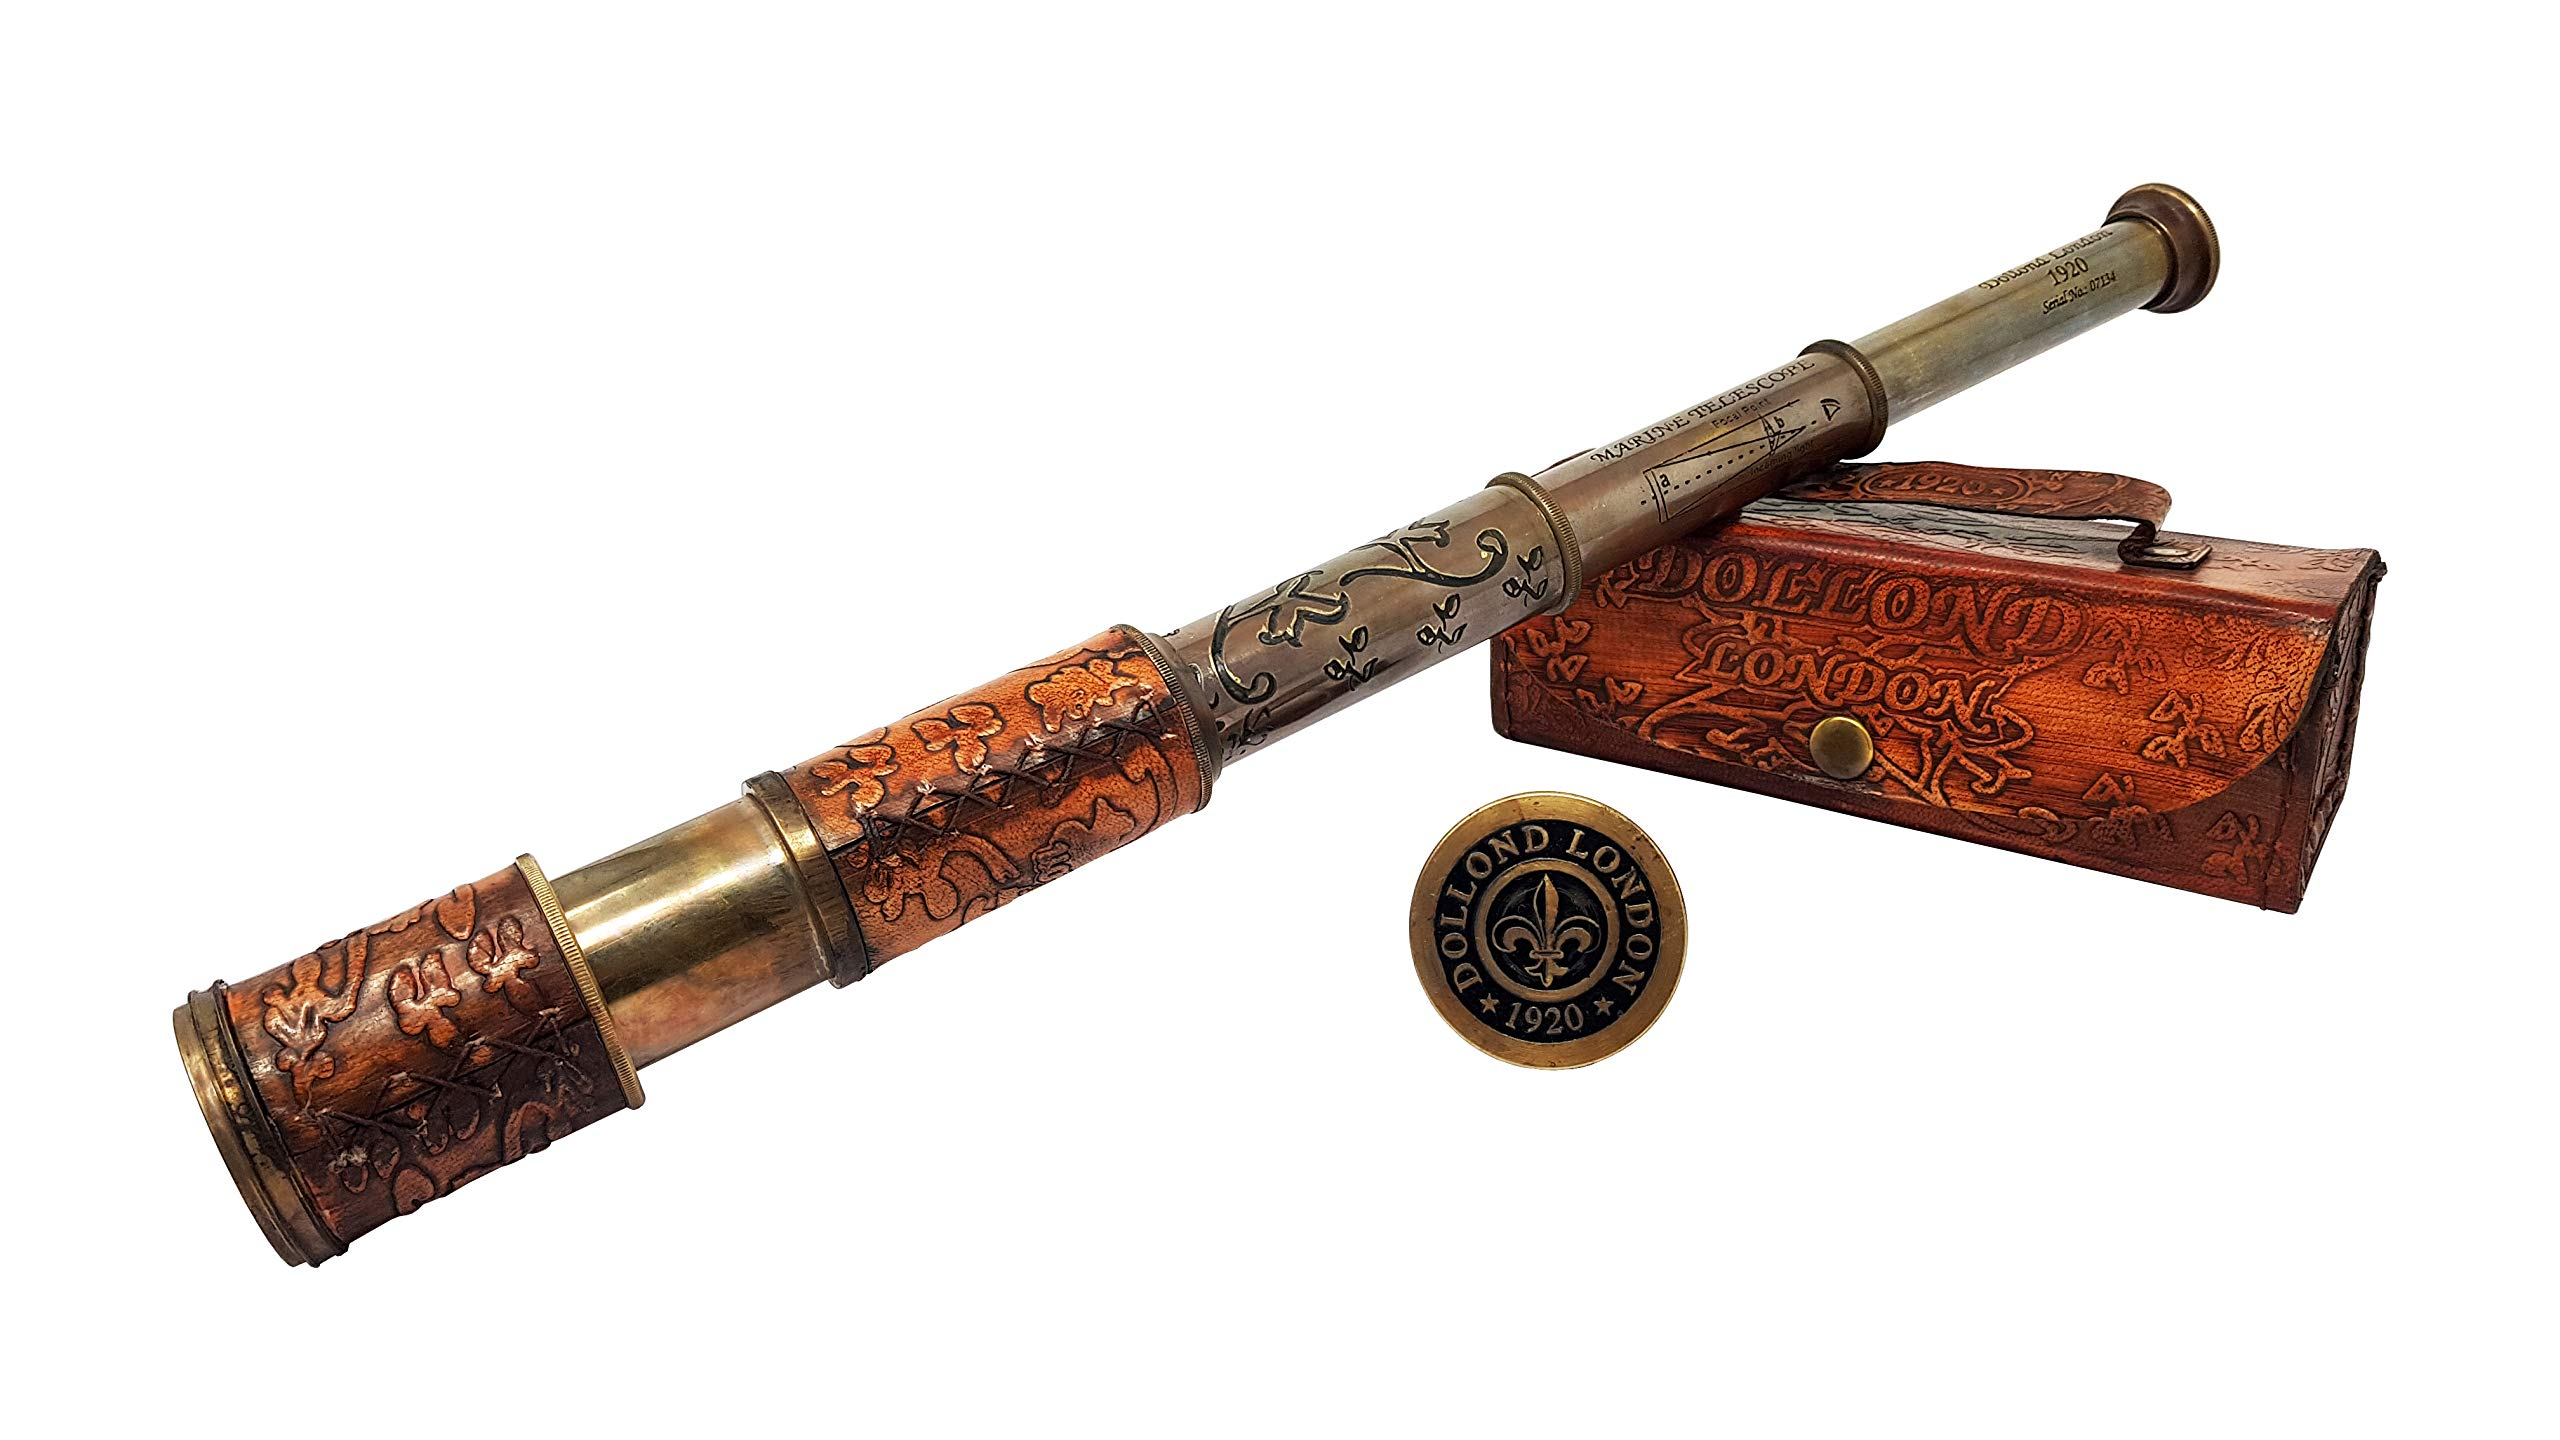 Brass Nautical - Antique Working Telescope / Spyglass Replica in Leather Box, with Glass Optics, Extendable to 14 inches, Made of Pure Brass, Decorative Kids Scope by Brass Nautical